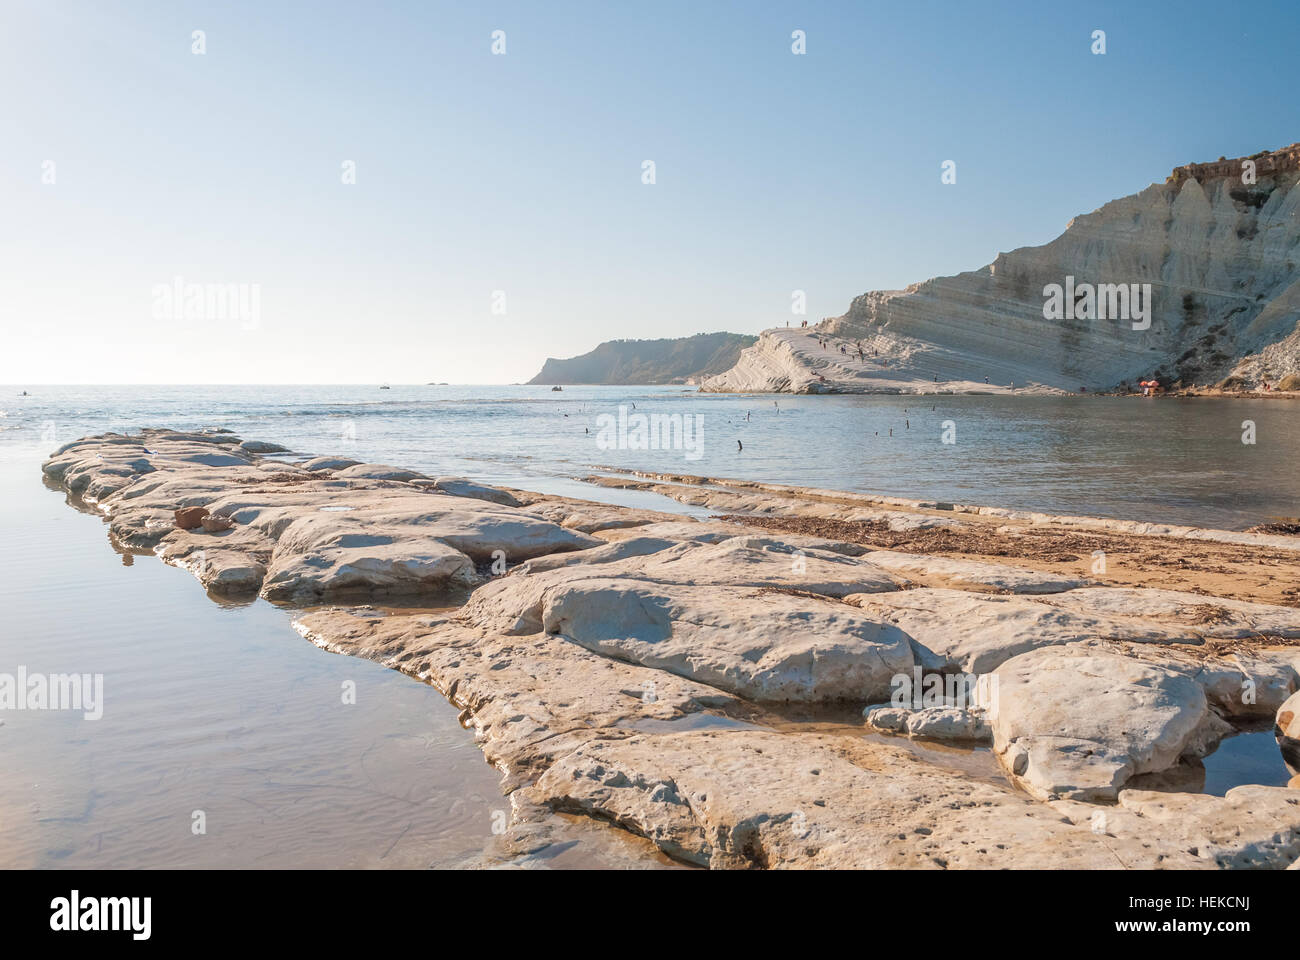 The rocky beach near the 'Scala dei Turchi' in Sicily - Stock Image